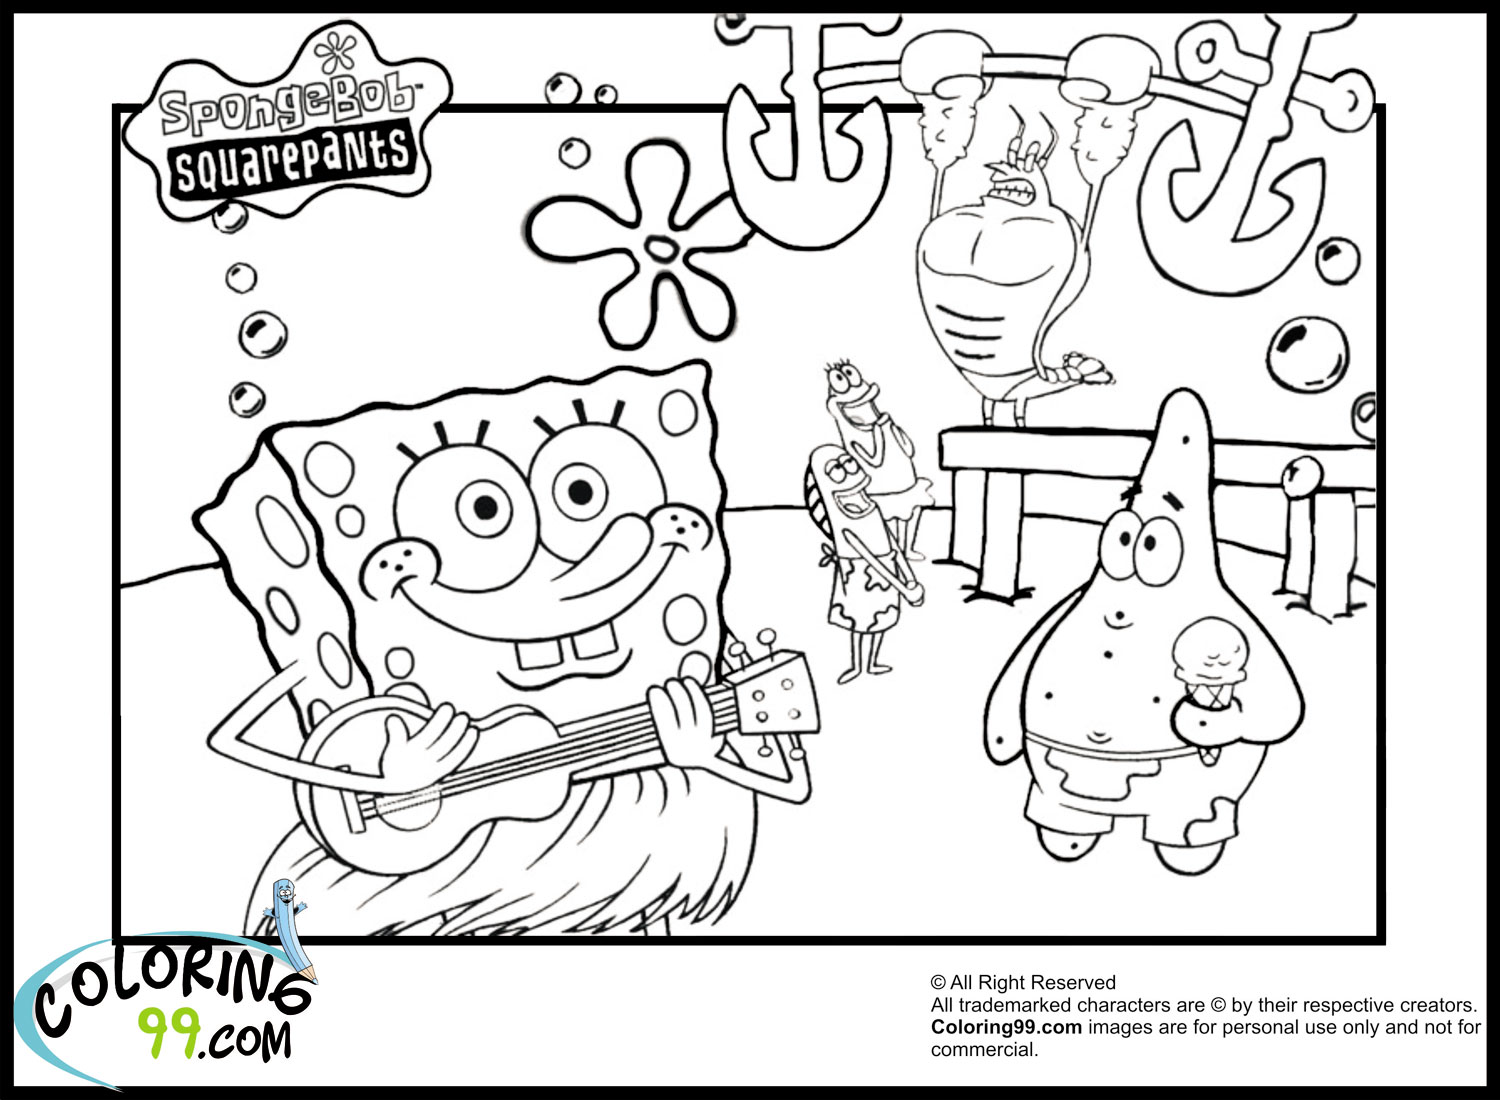 spongebob pineapple house coloring page